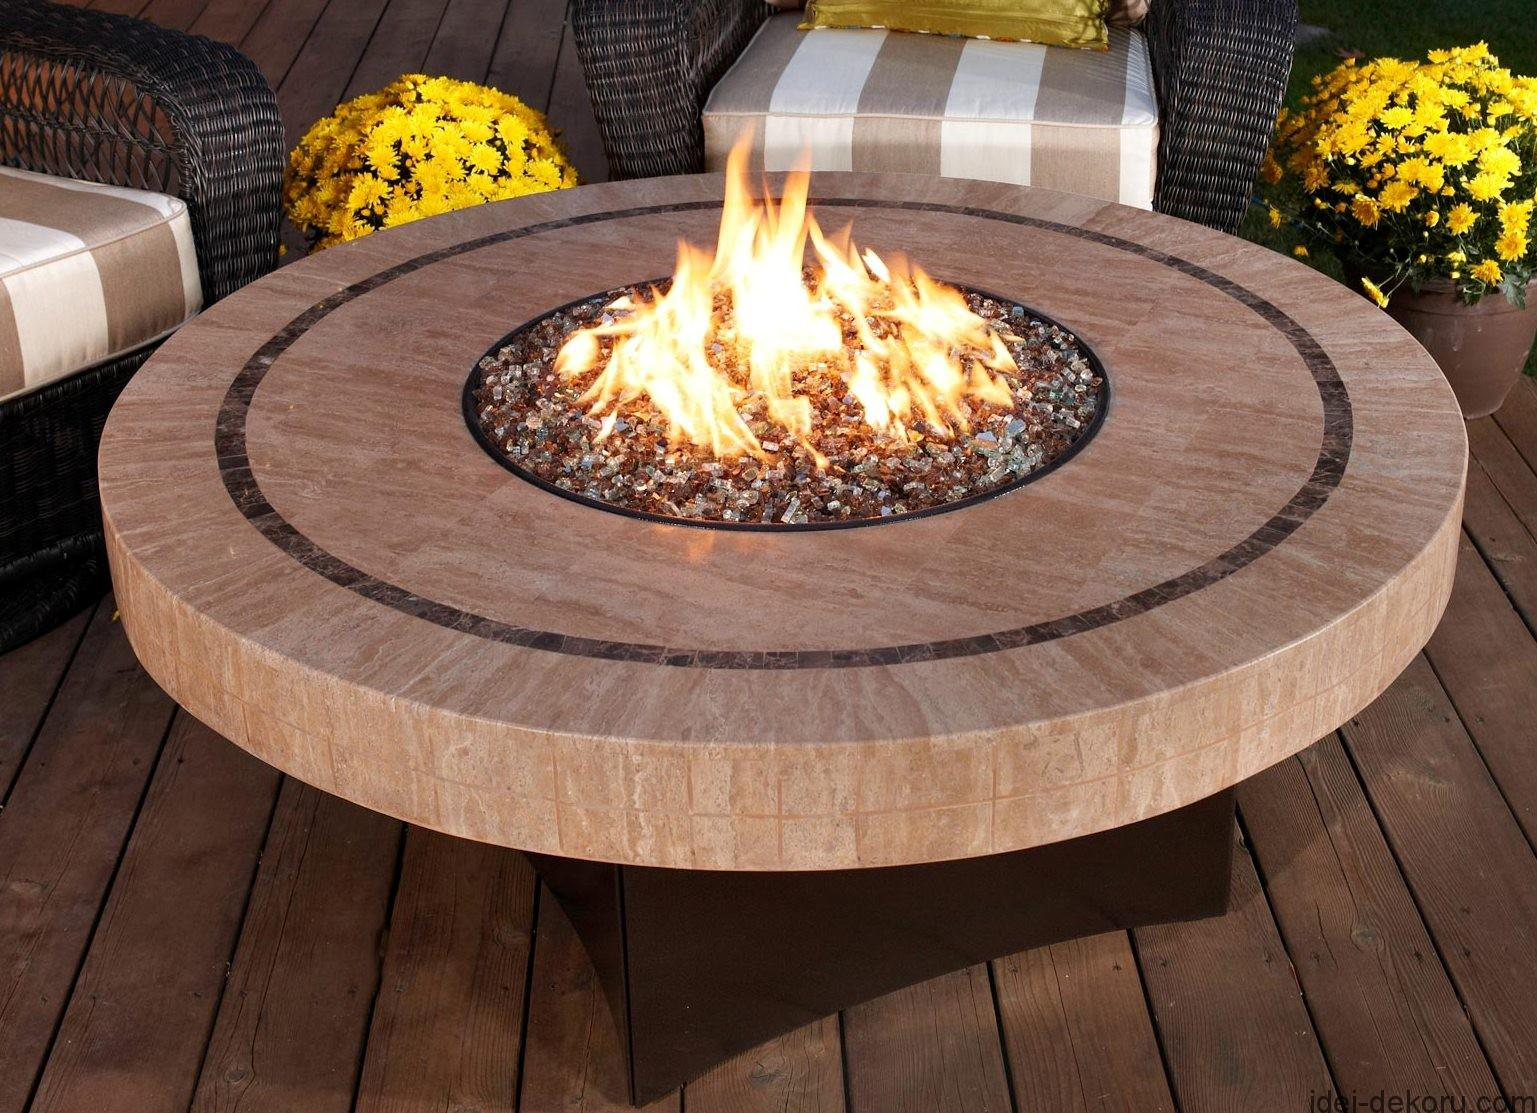 popular-outdoor-gas-firepits-and-walnut-wood-outdoor-flooring-modern-gas-fire-pit-for-your-outdoor-23